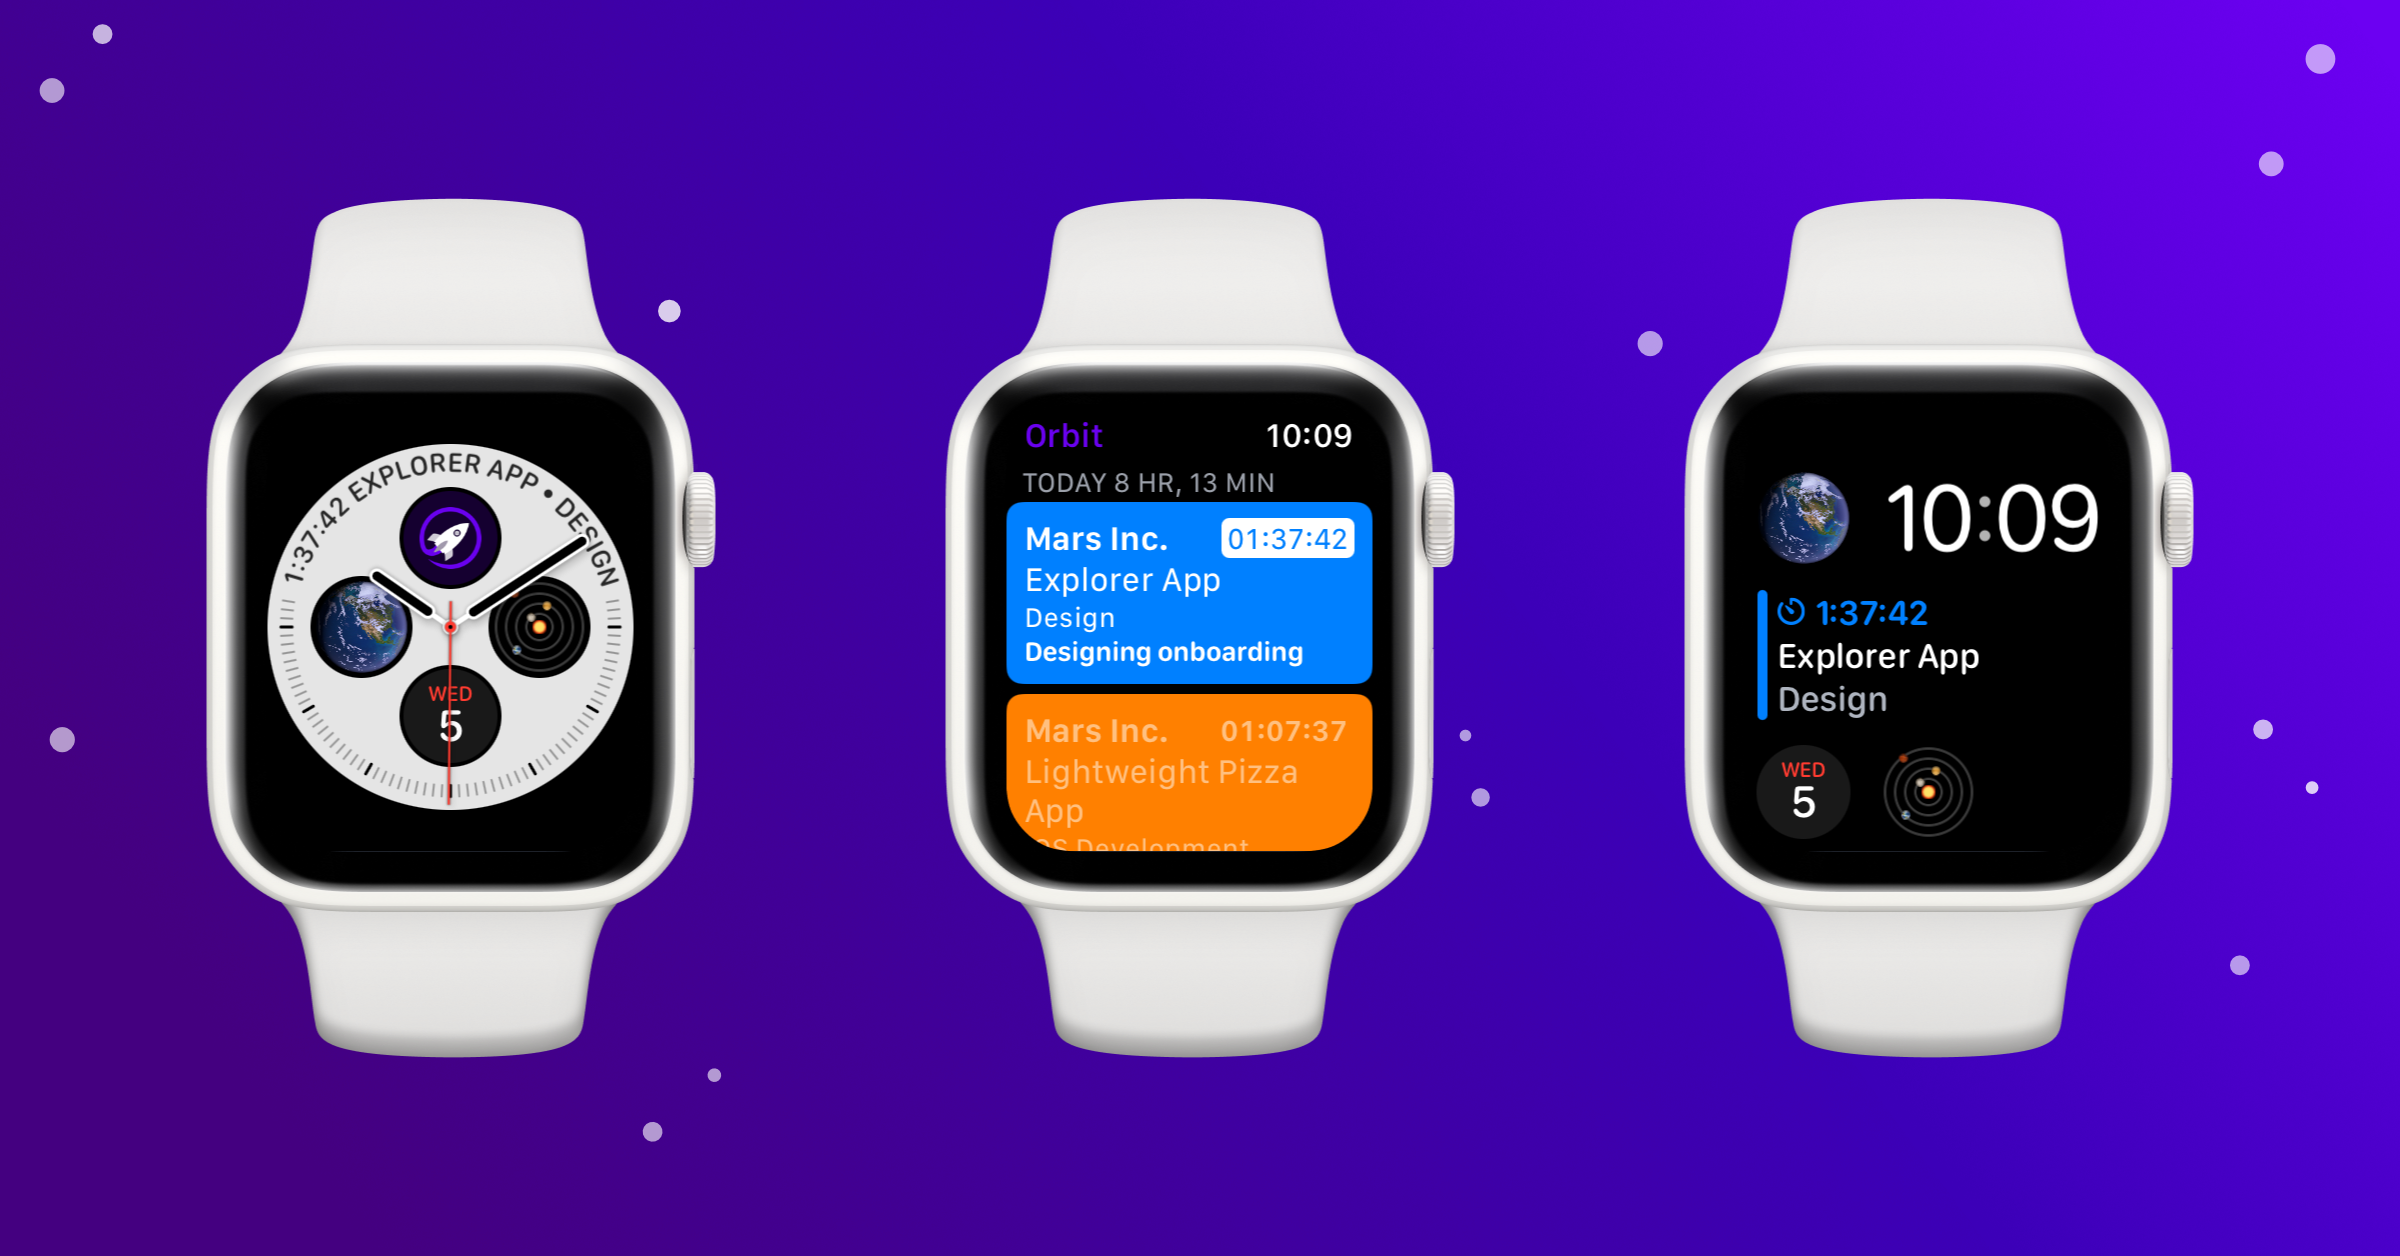 Orbit Time Tracking and Billing App Adds Apple Watch Compatibility